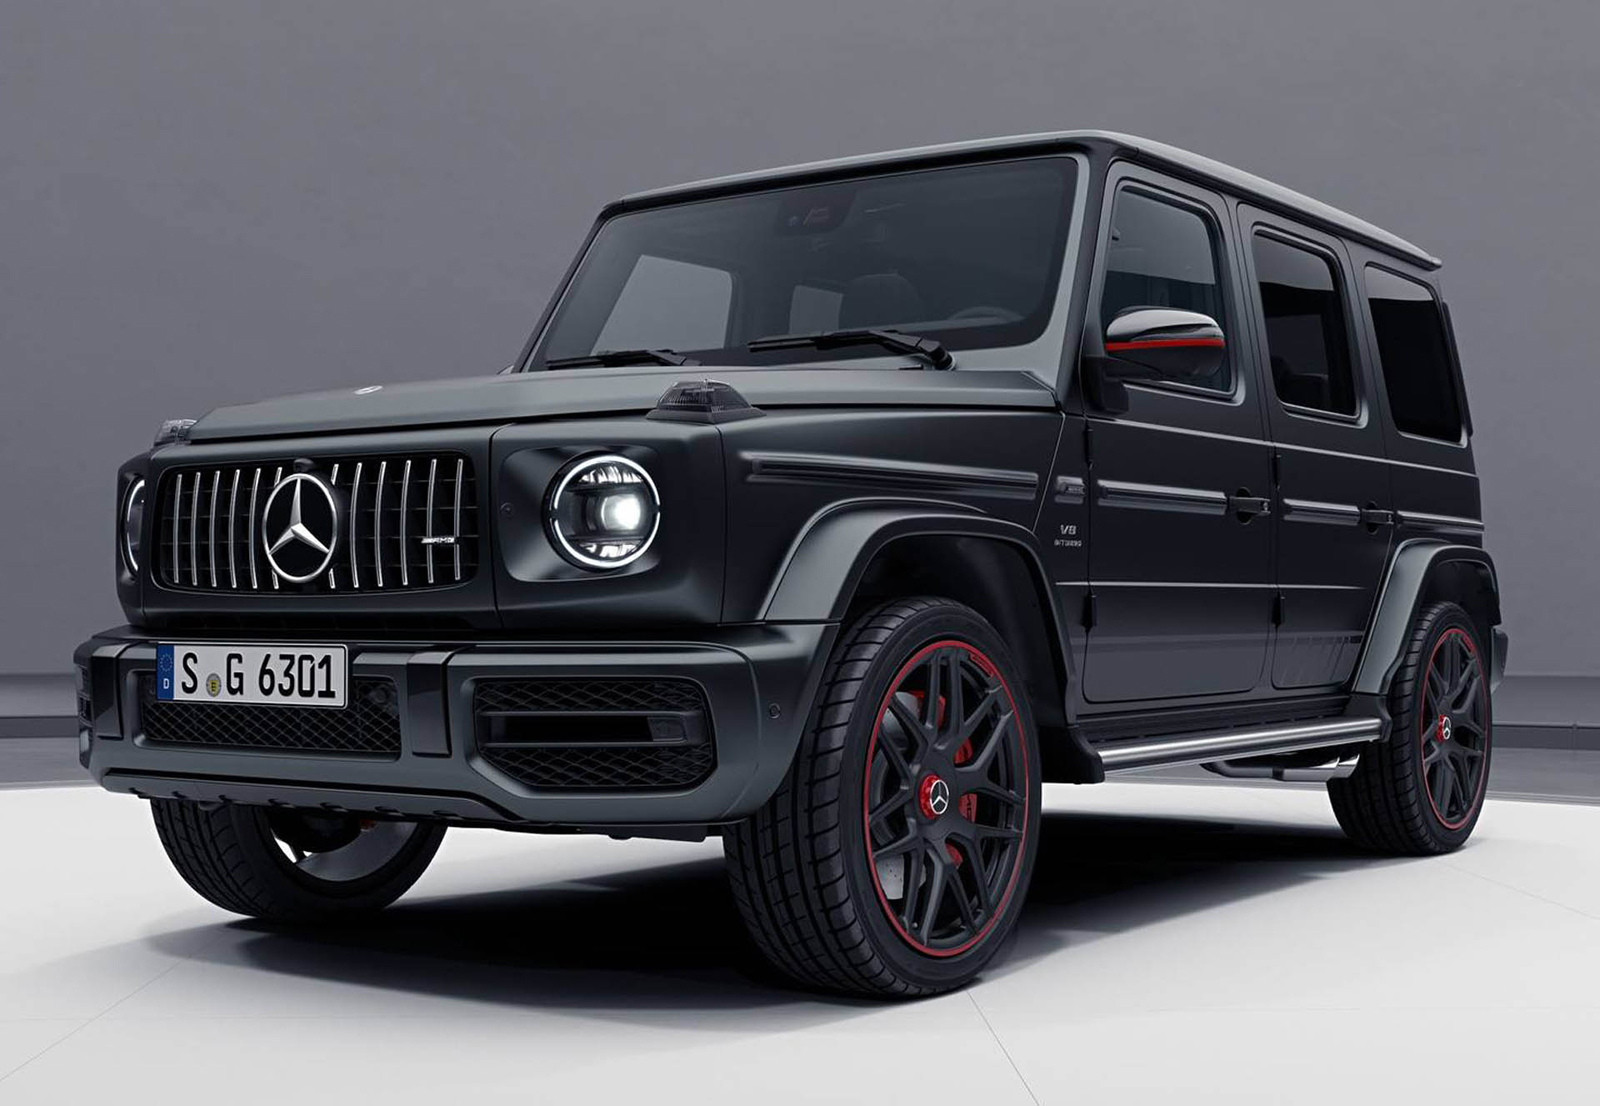 2018 mercedes amg g63 edition 1 is the most menacing g class yet mercedes benz forum. Black Bedroom Furniture Sets. Home Design Ideas